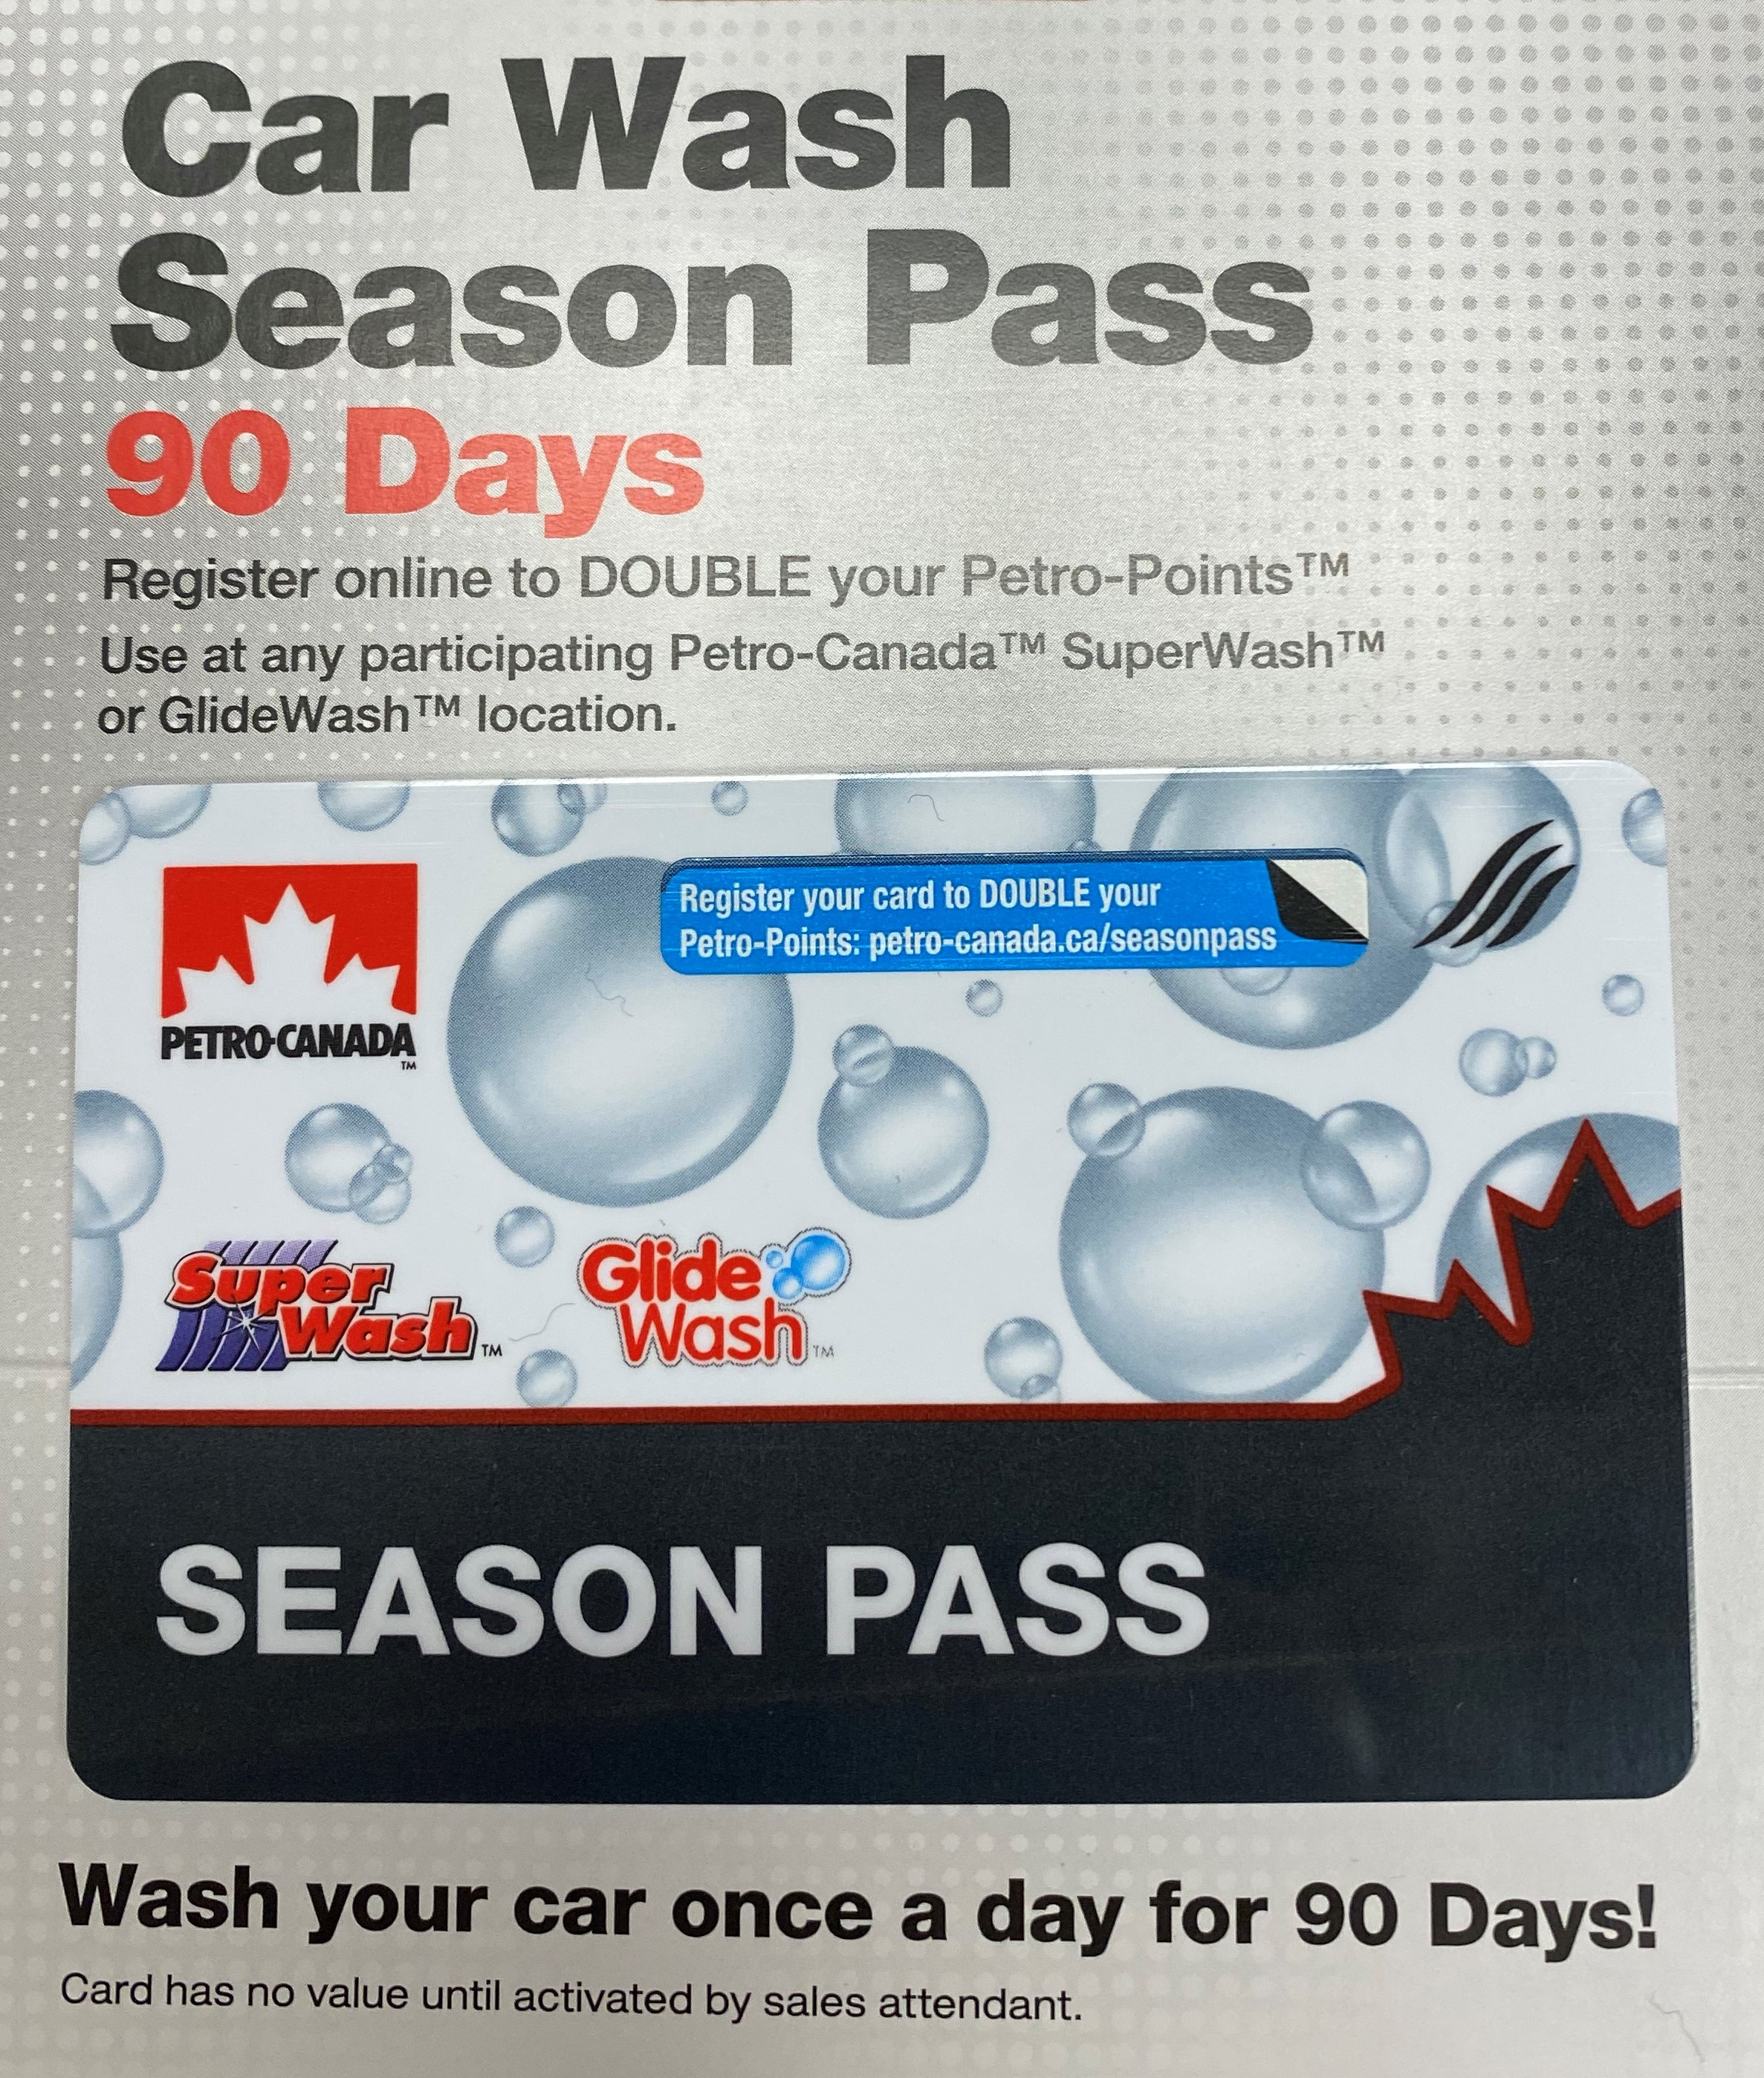 Car Wash Season Pass